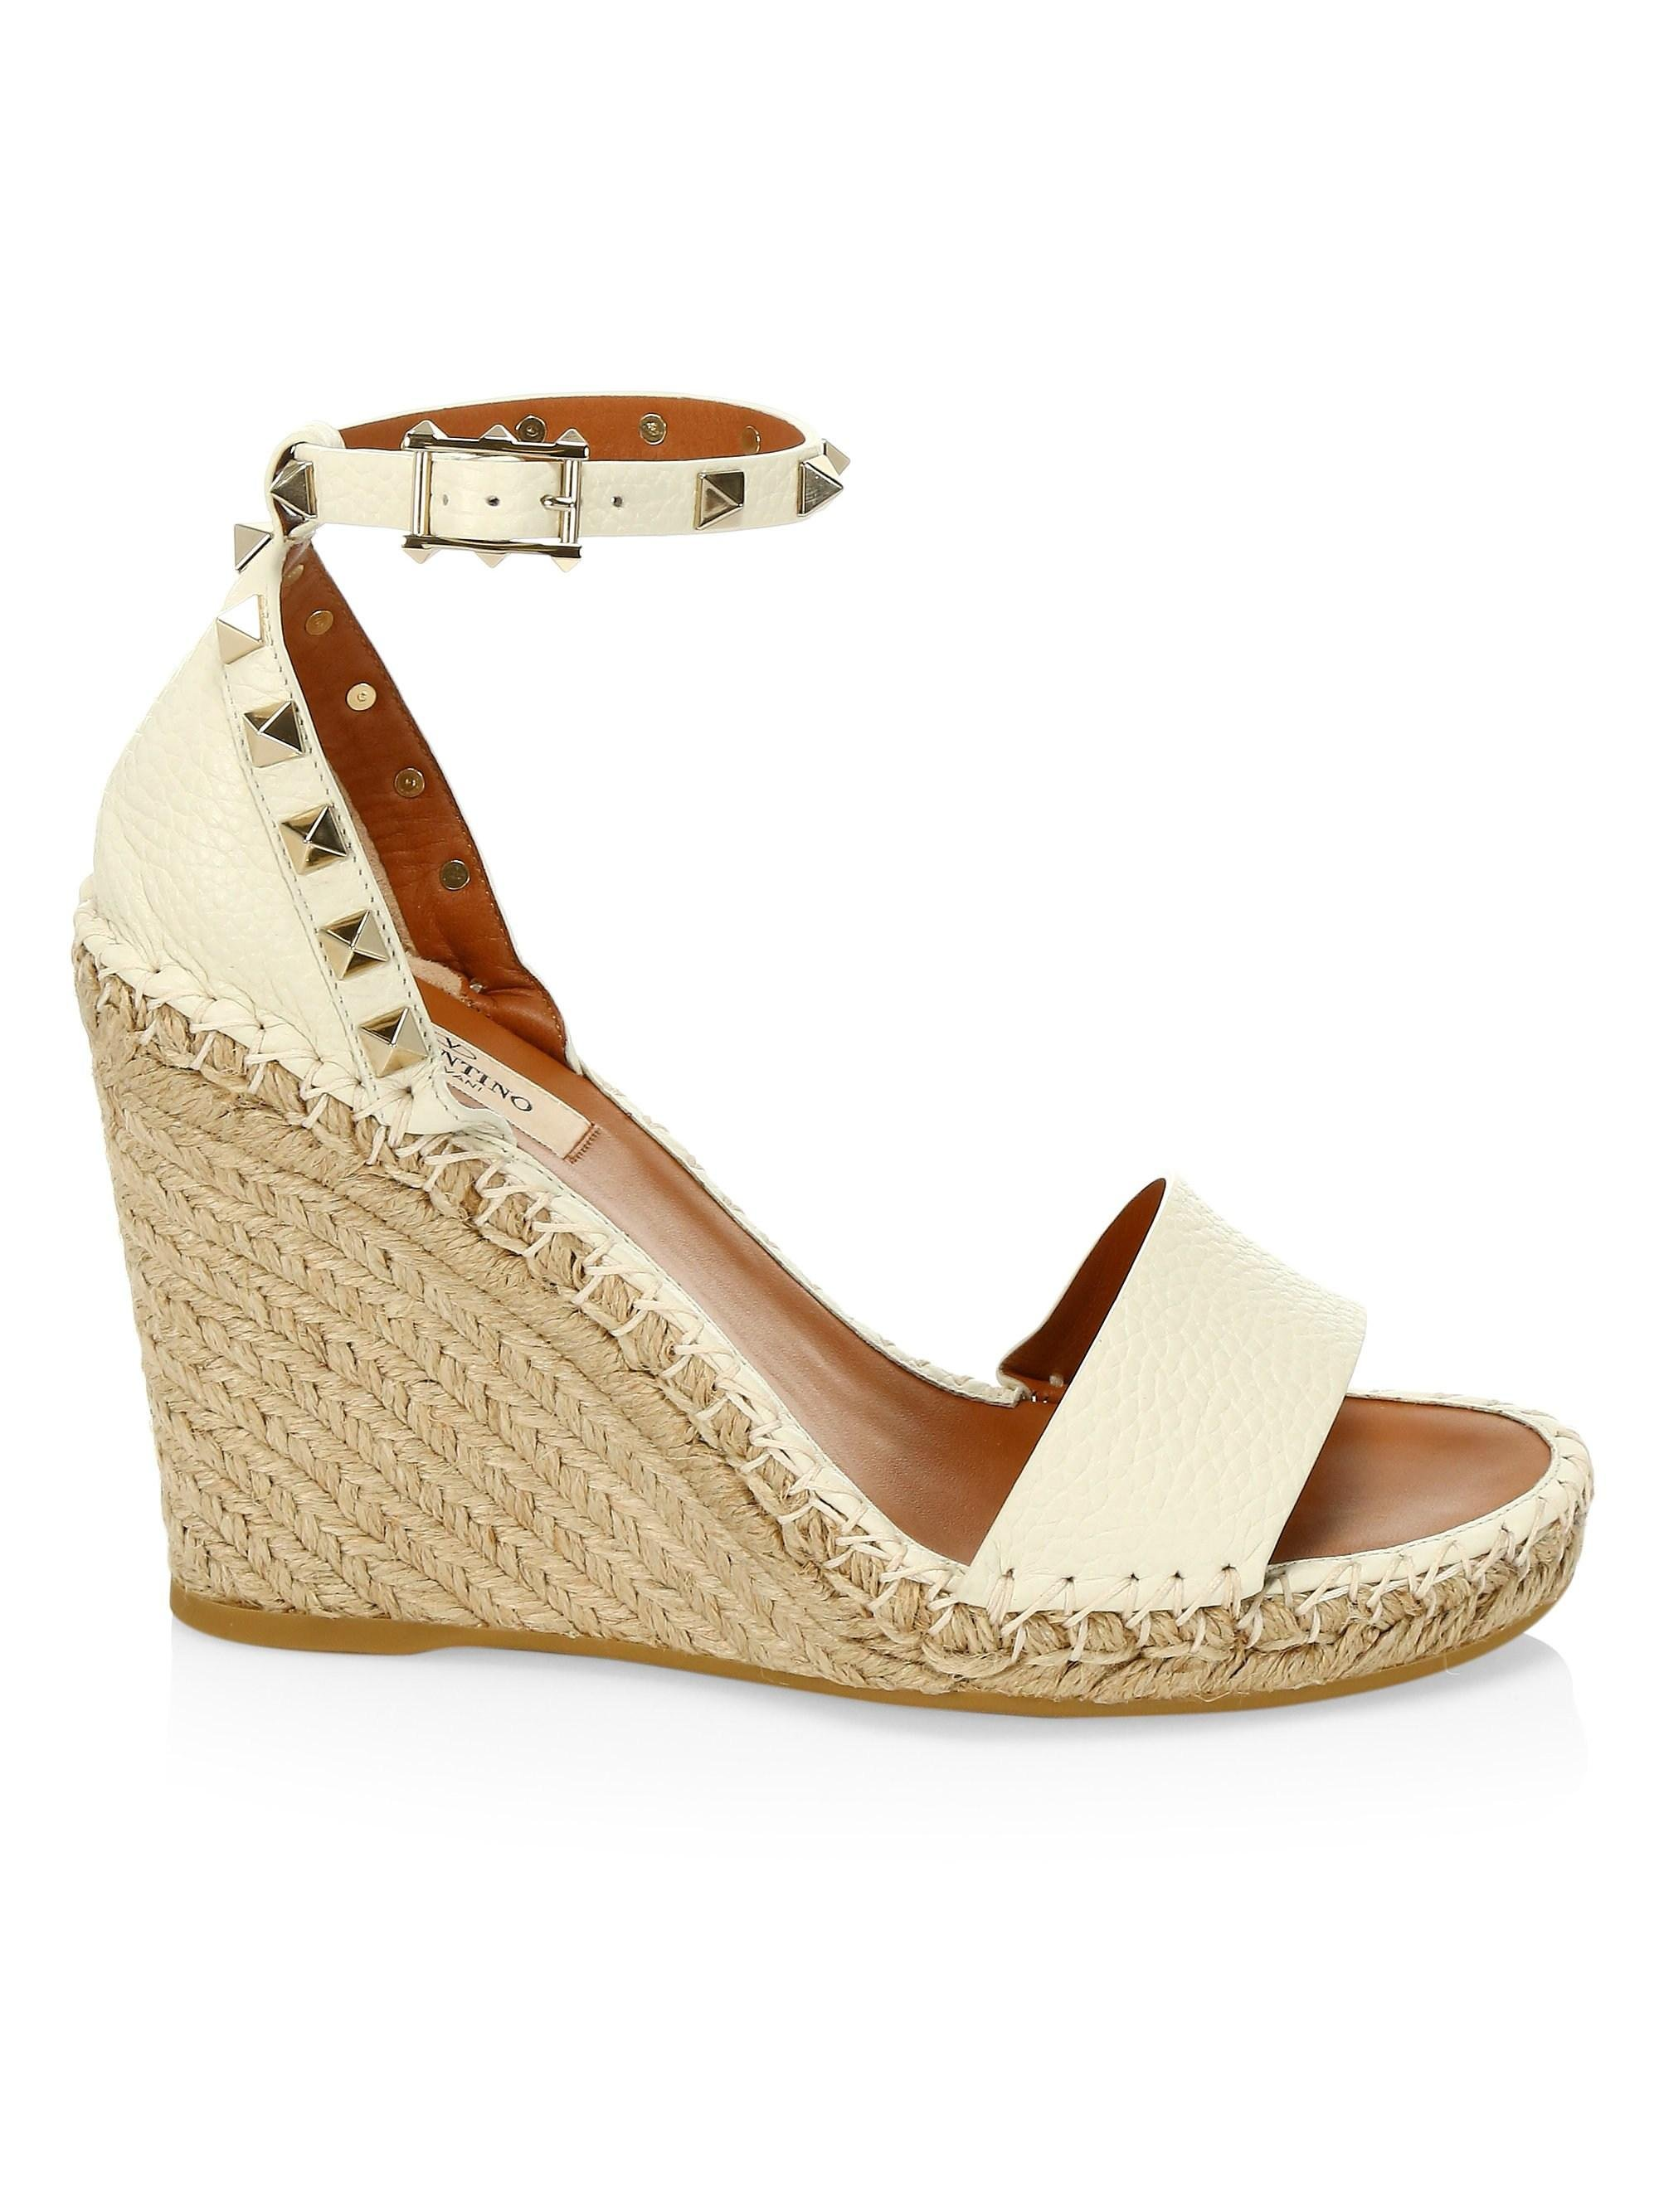 94fd54211a7 Women's White Rockstud Leather Espadrille Wedge Sandals